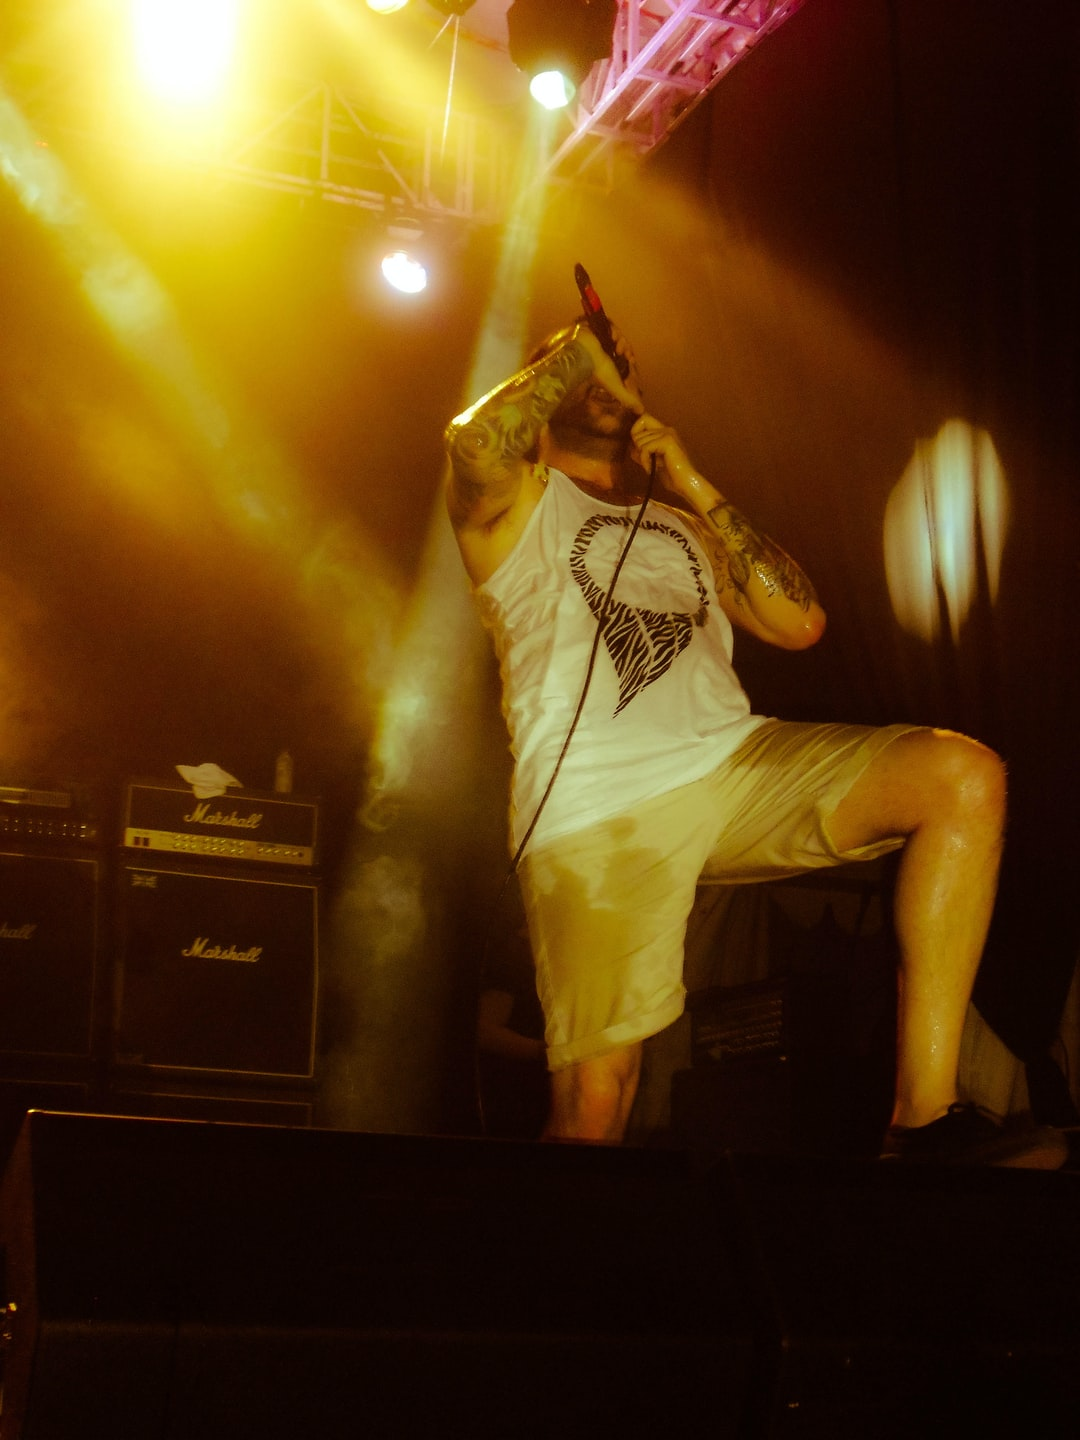 August burns red, a metalcore band from Lancaster, PA. when their show at Bulungan, Jakarta, ID.